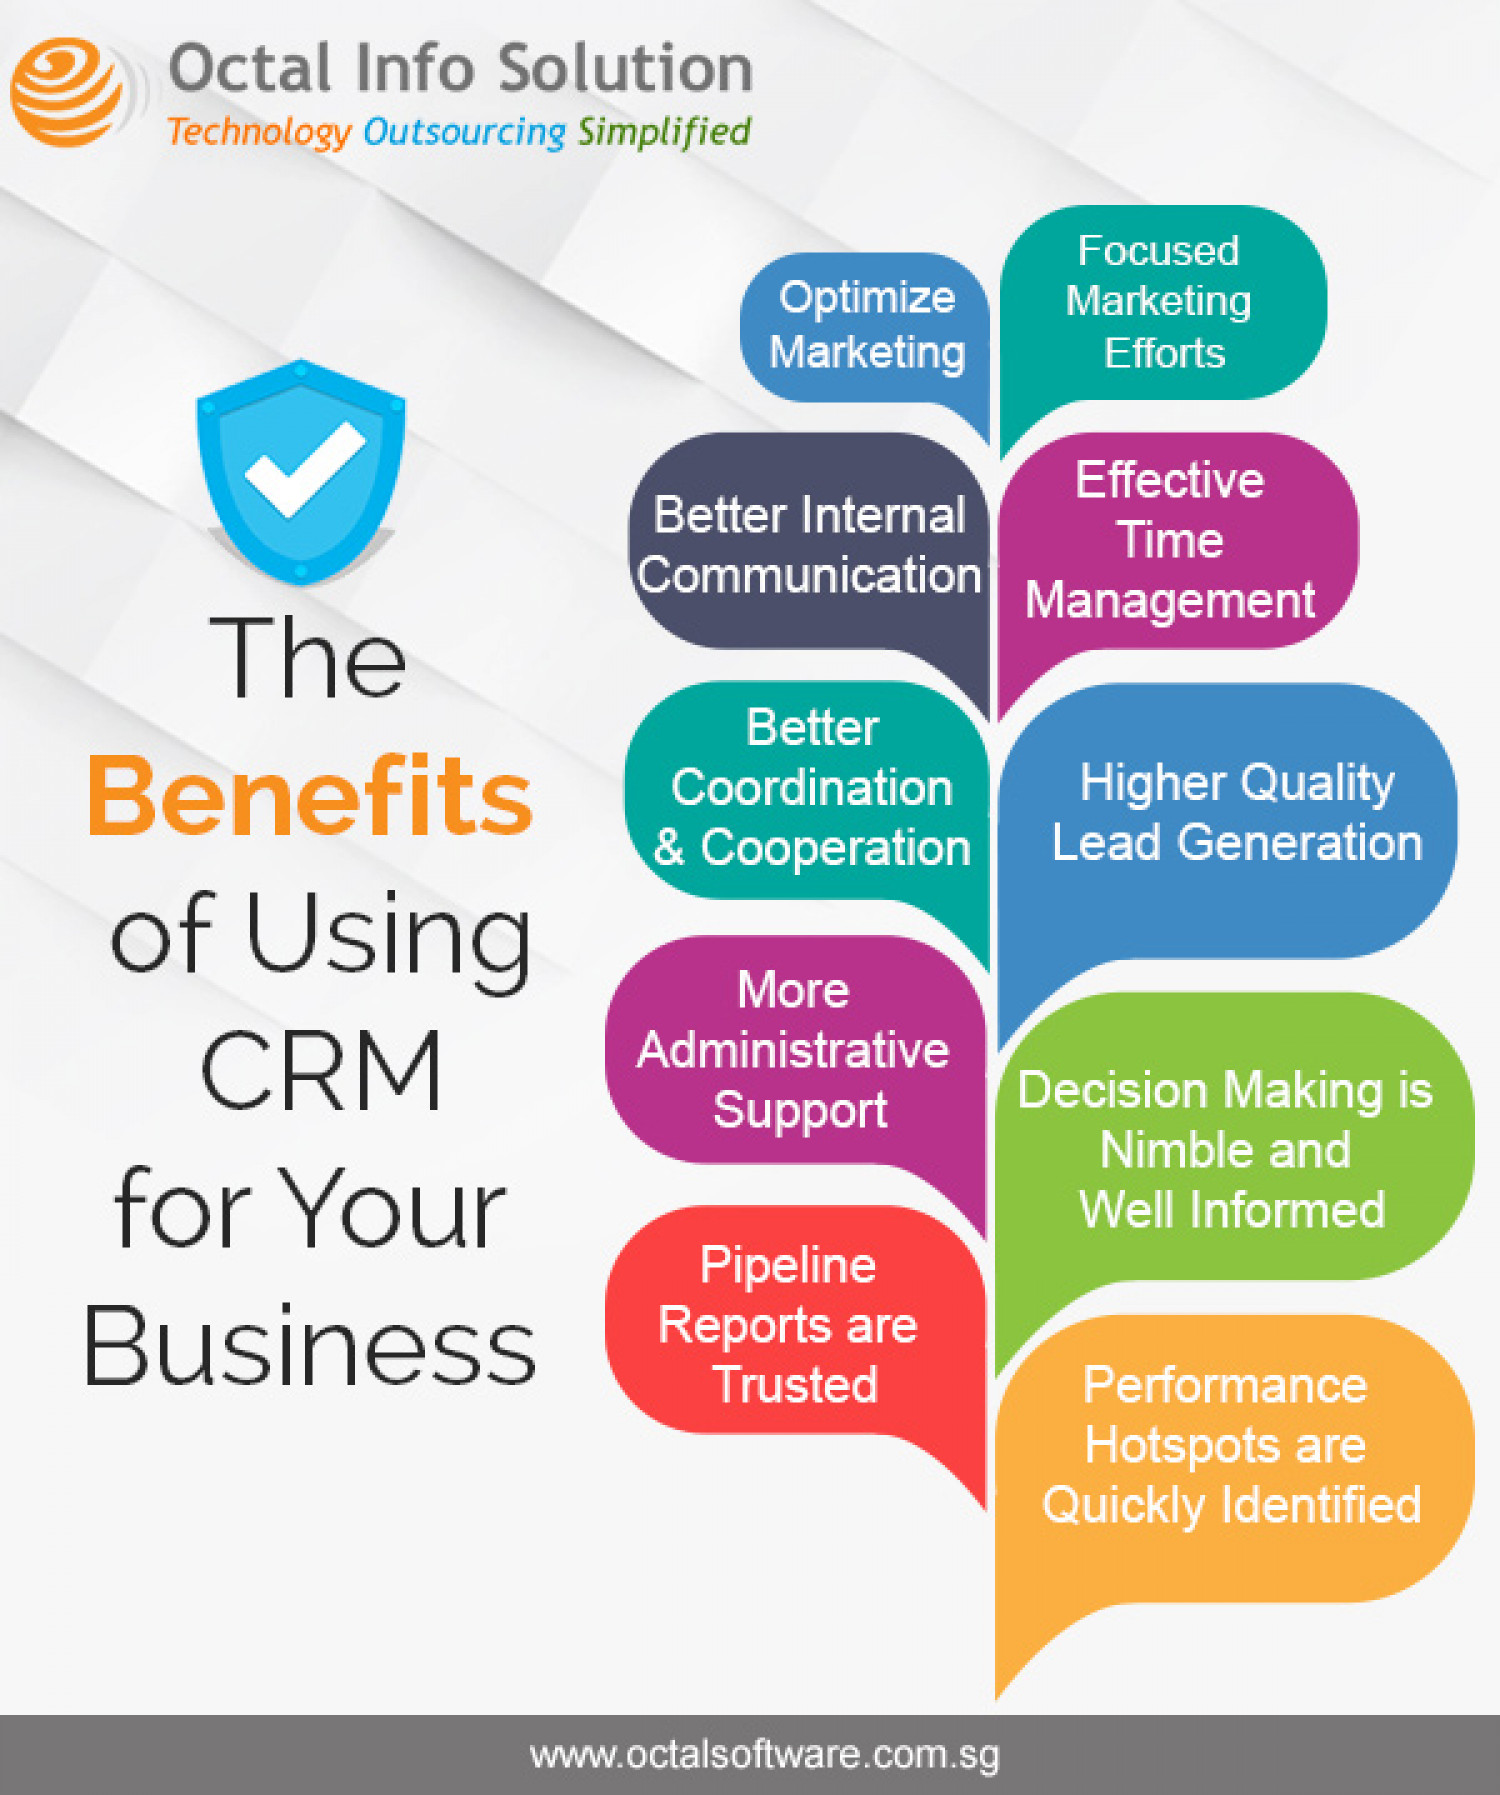 The Benefits of Using CRM For Your Business Infographic